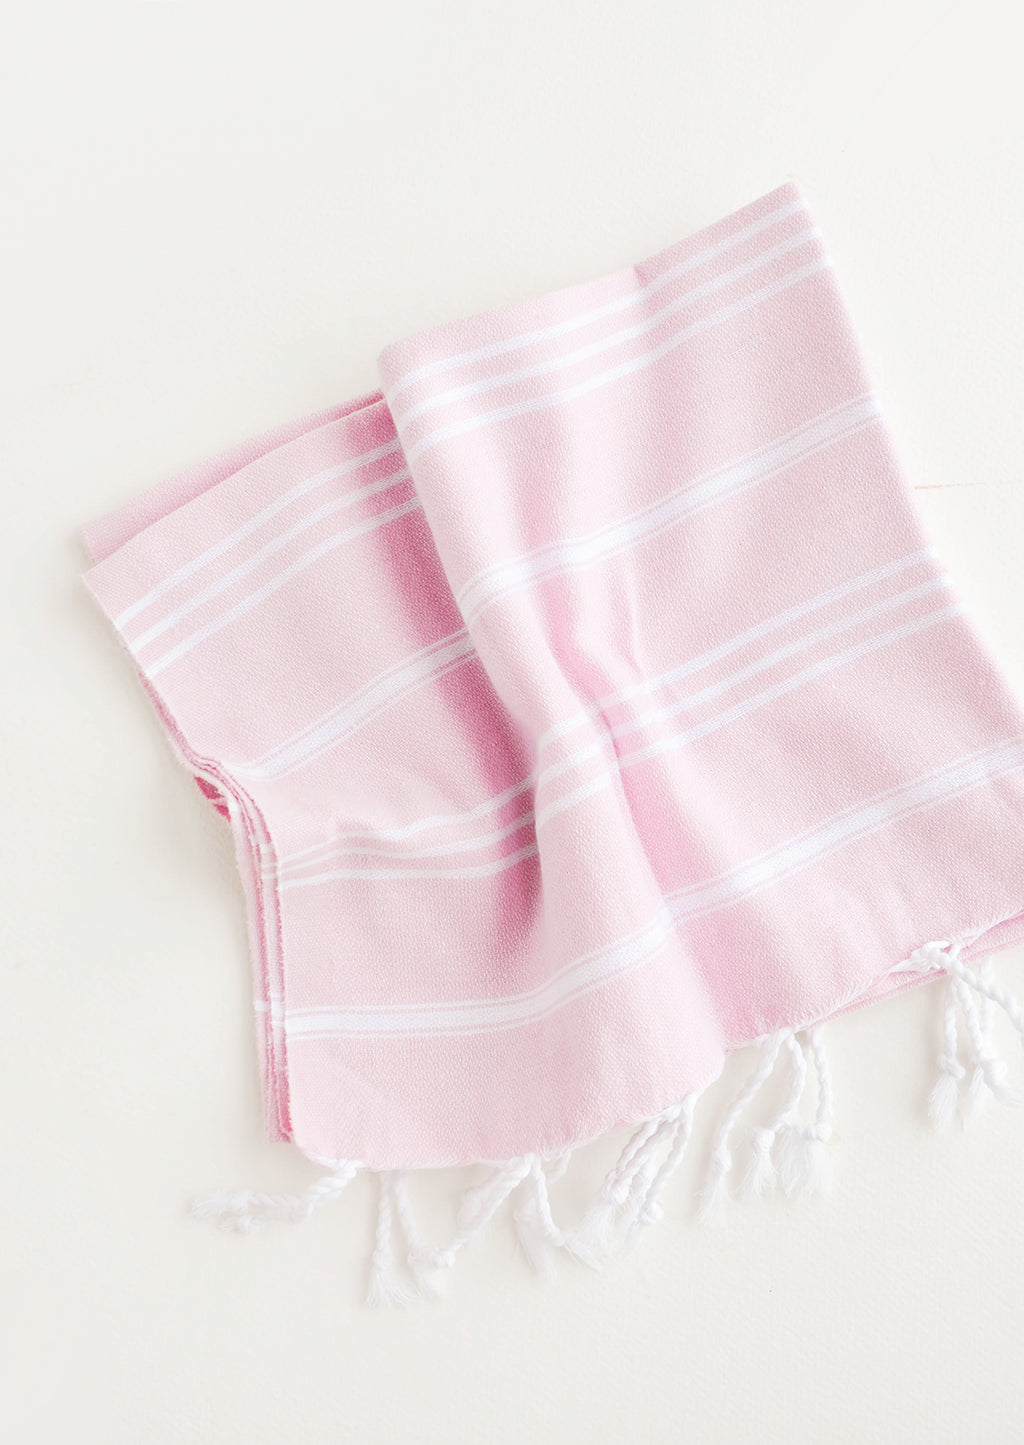 Pink / Hand Towel: Cotton towel with white stripes in pink, twisted fringe on ends